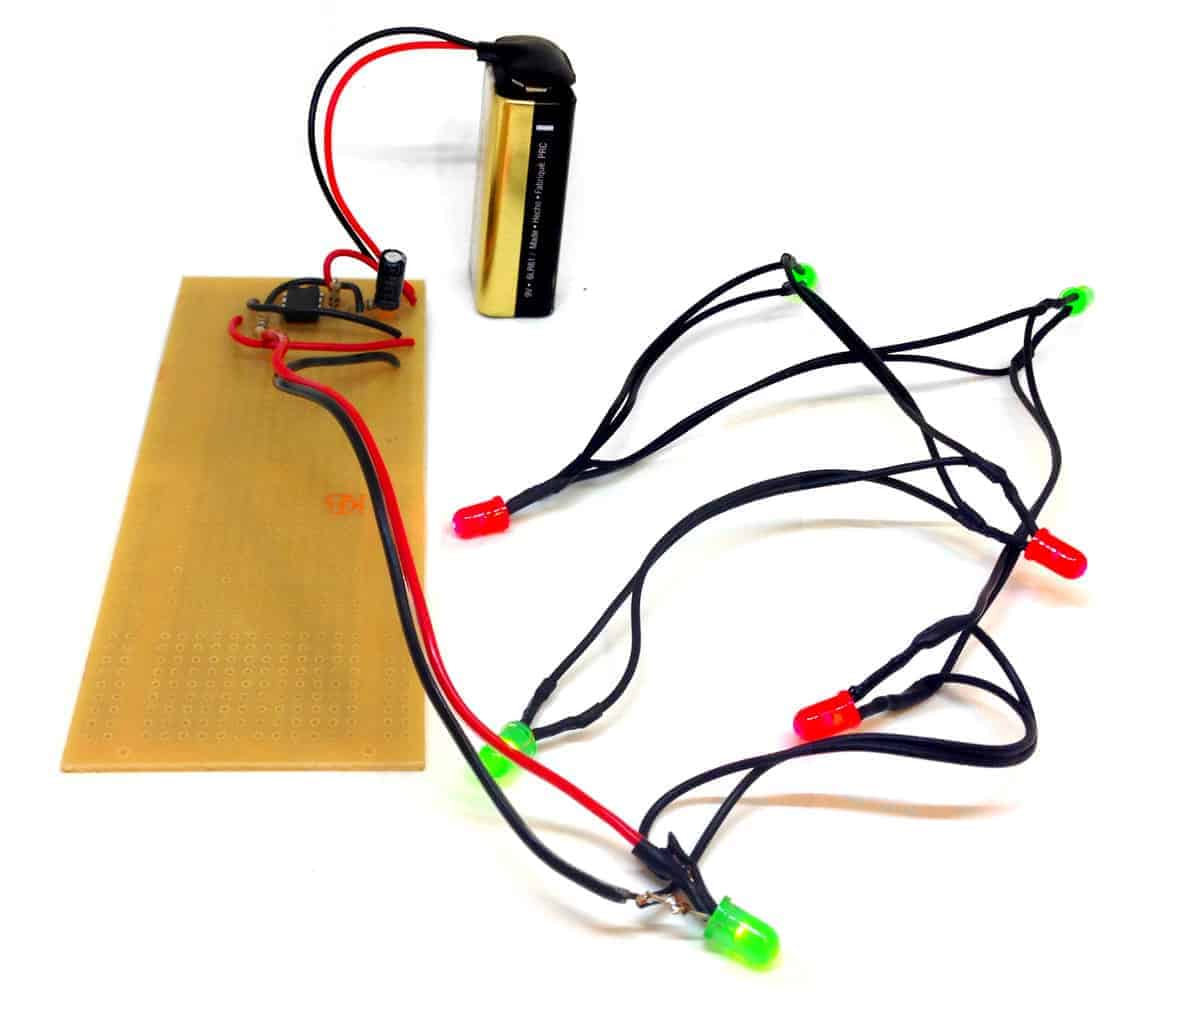 Blinking christmas lights build electronic circuits blinking christmas lights circuit cheapraybanclubmaster Image collections